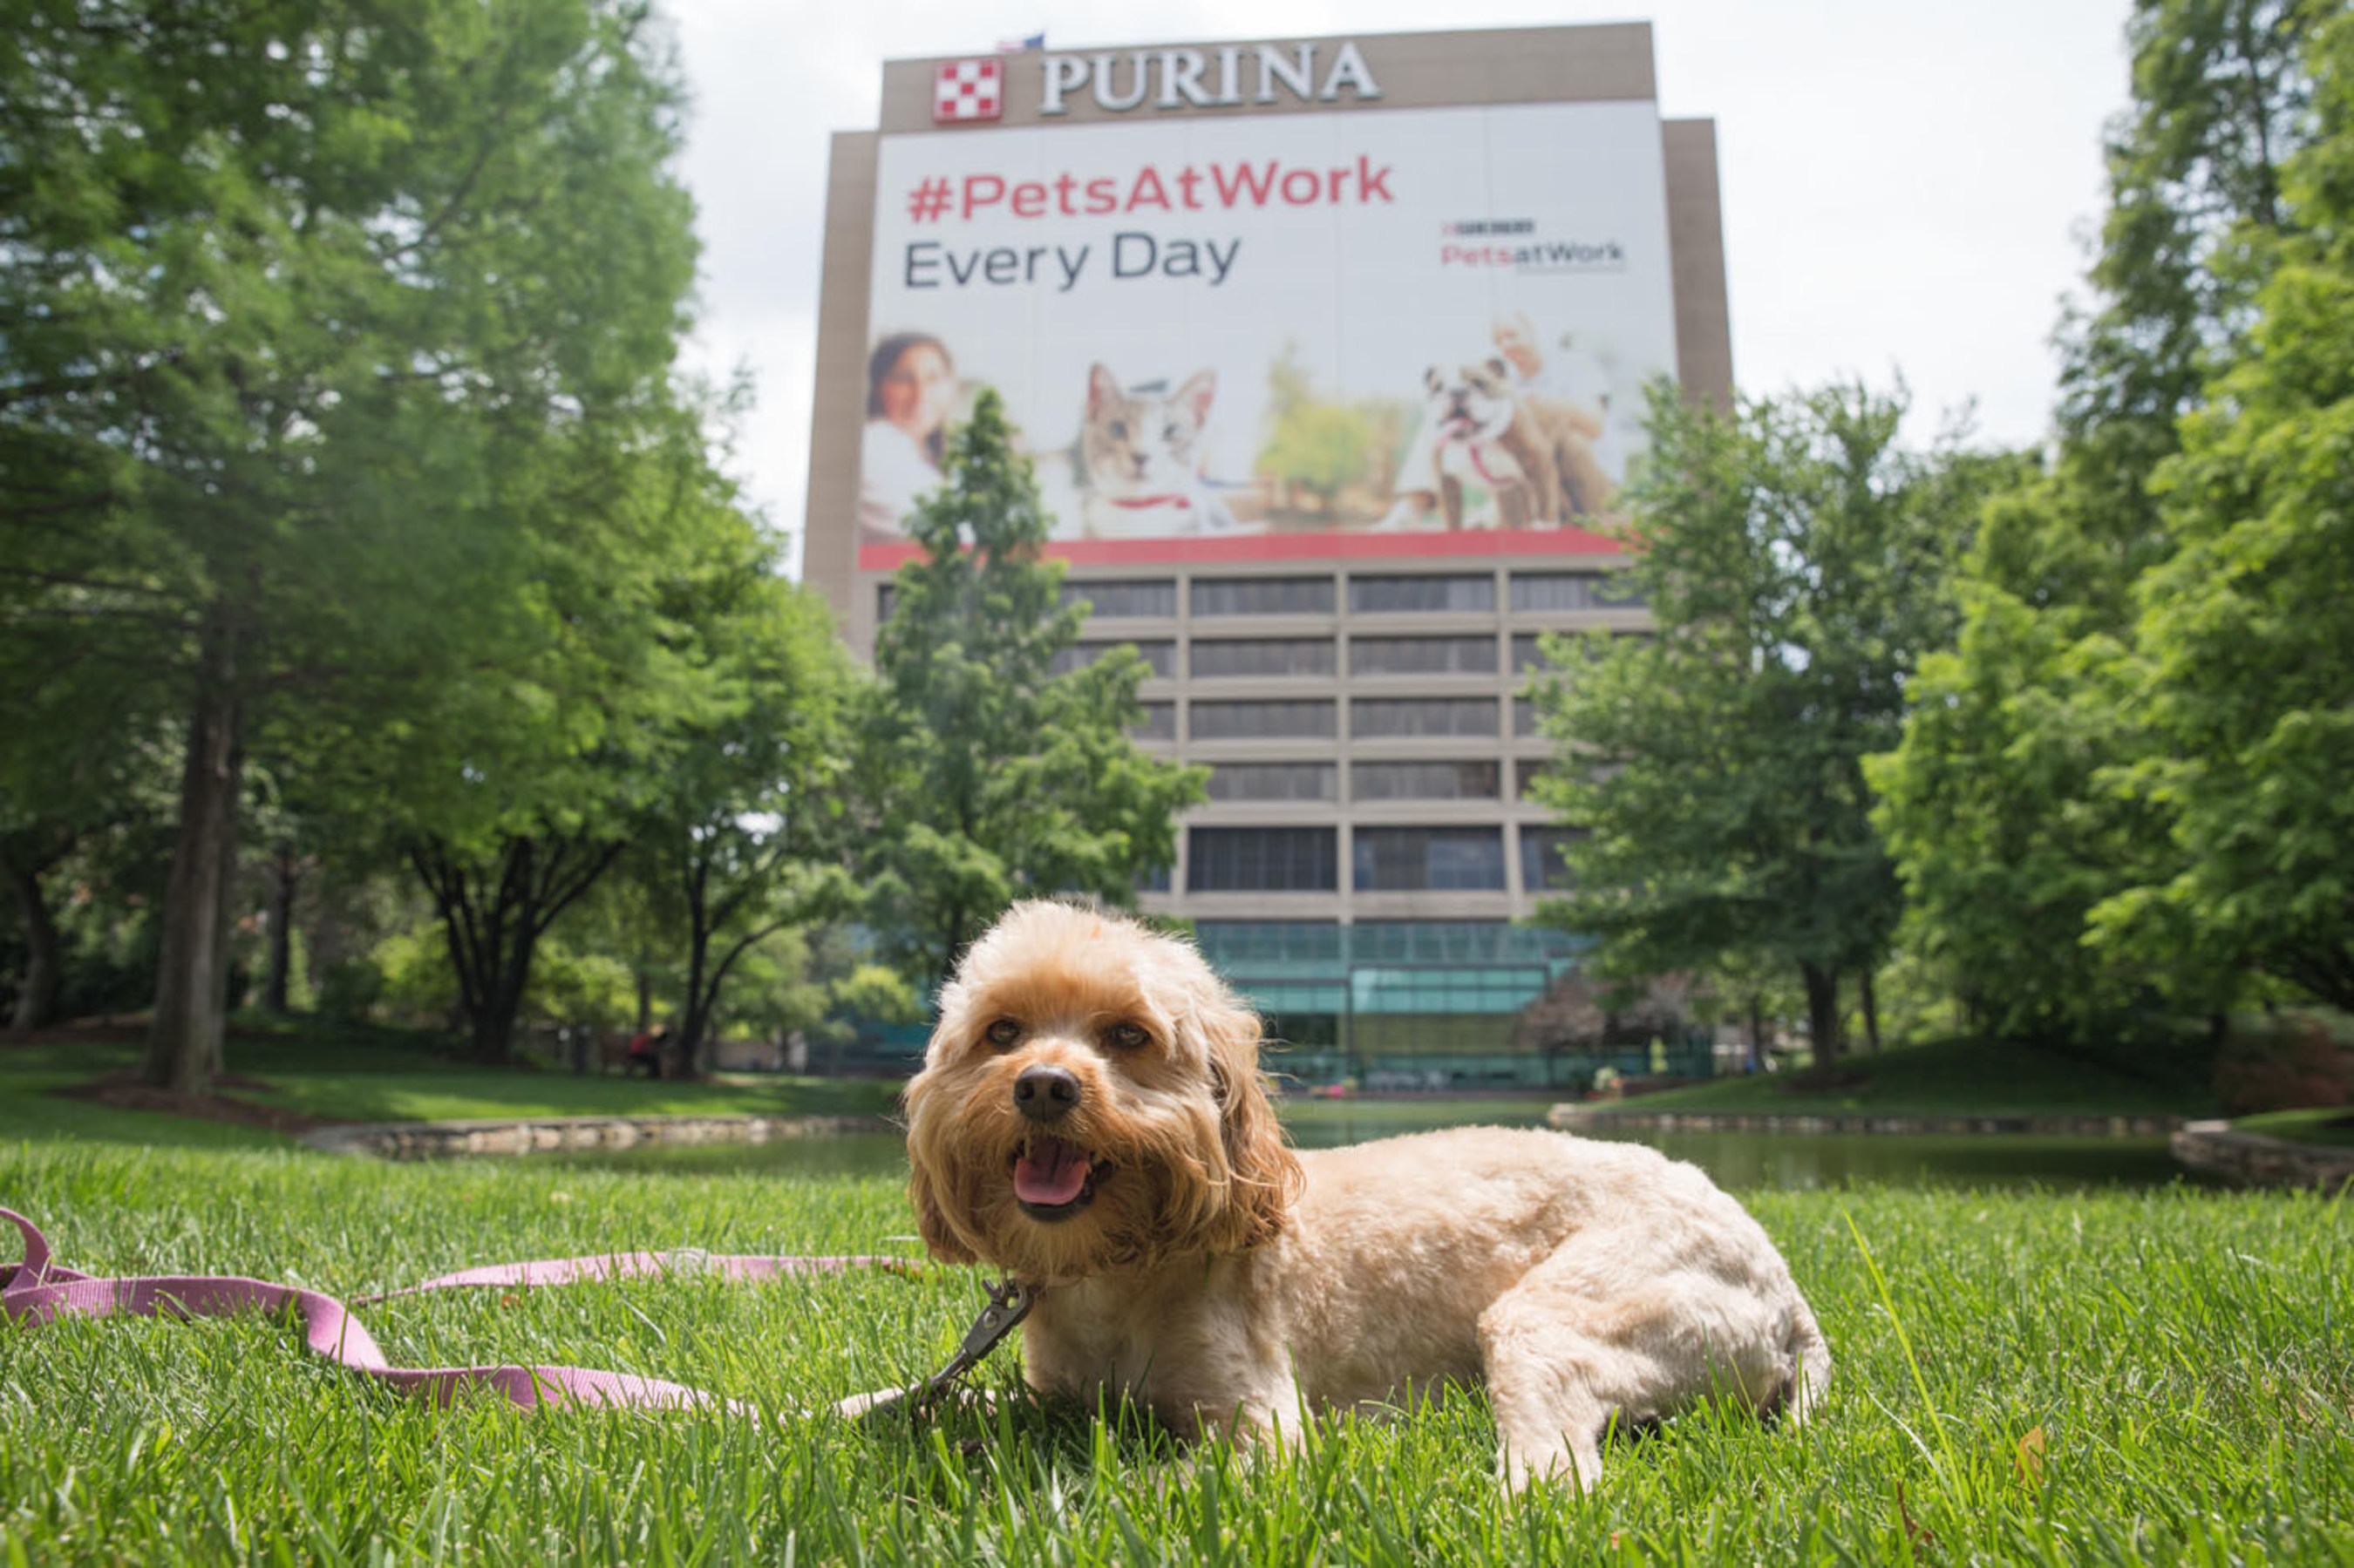 Purina celebrates Take Your Dog to Work Day on June 26 at the Purina headquarters in St. Louis to show how pets and people are better together at work.